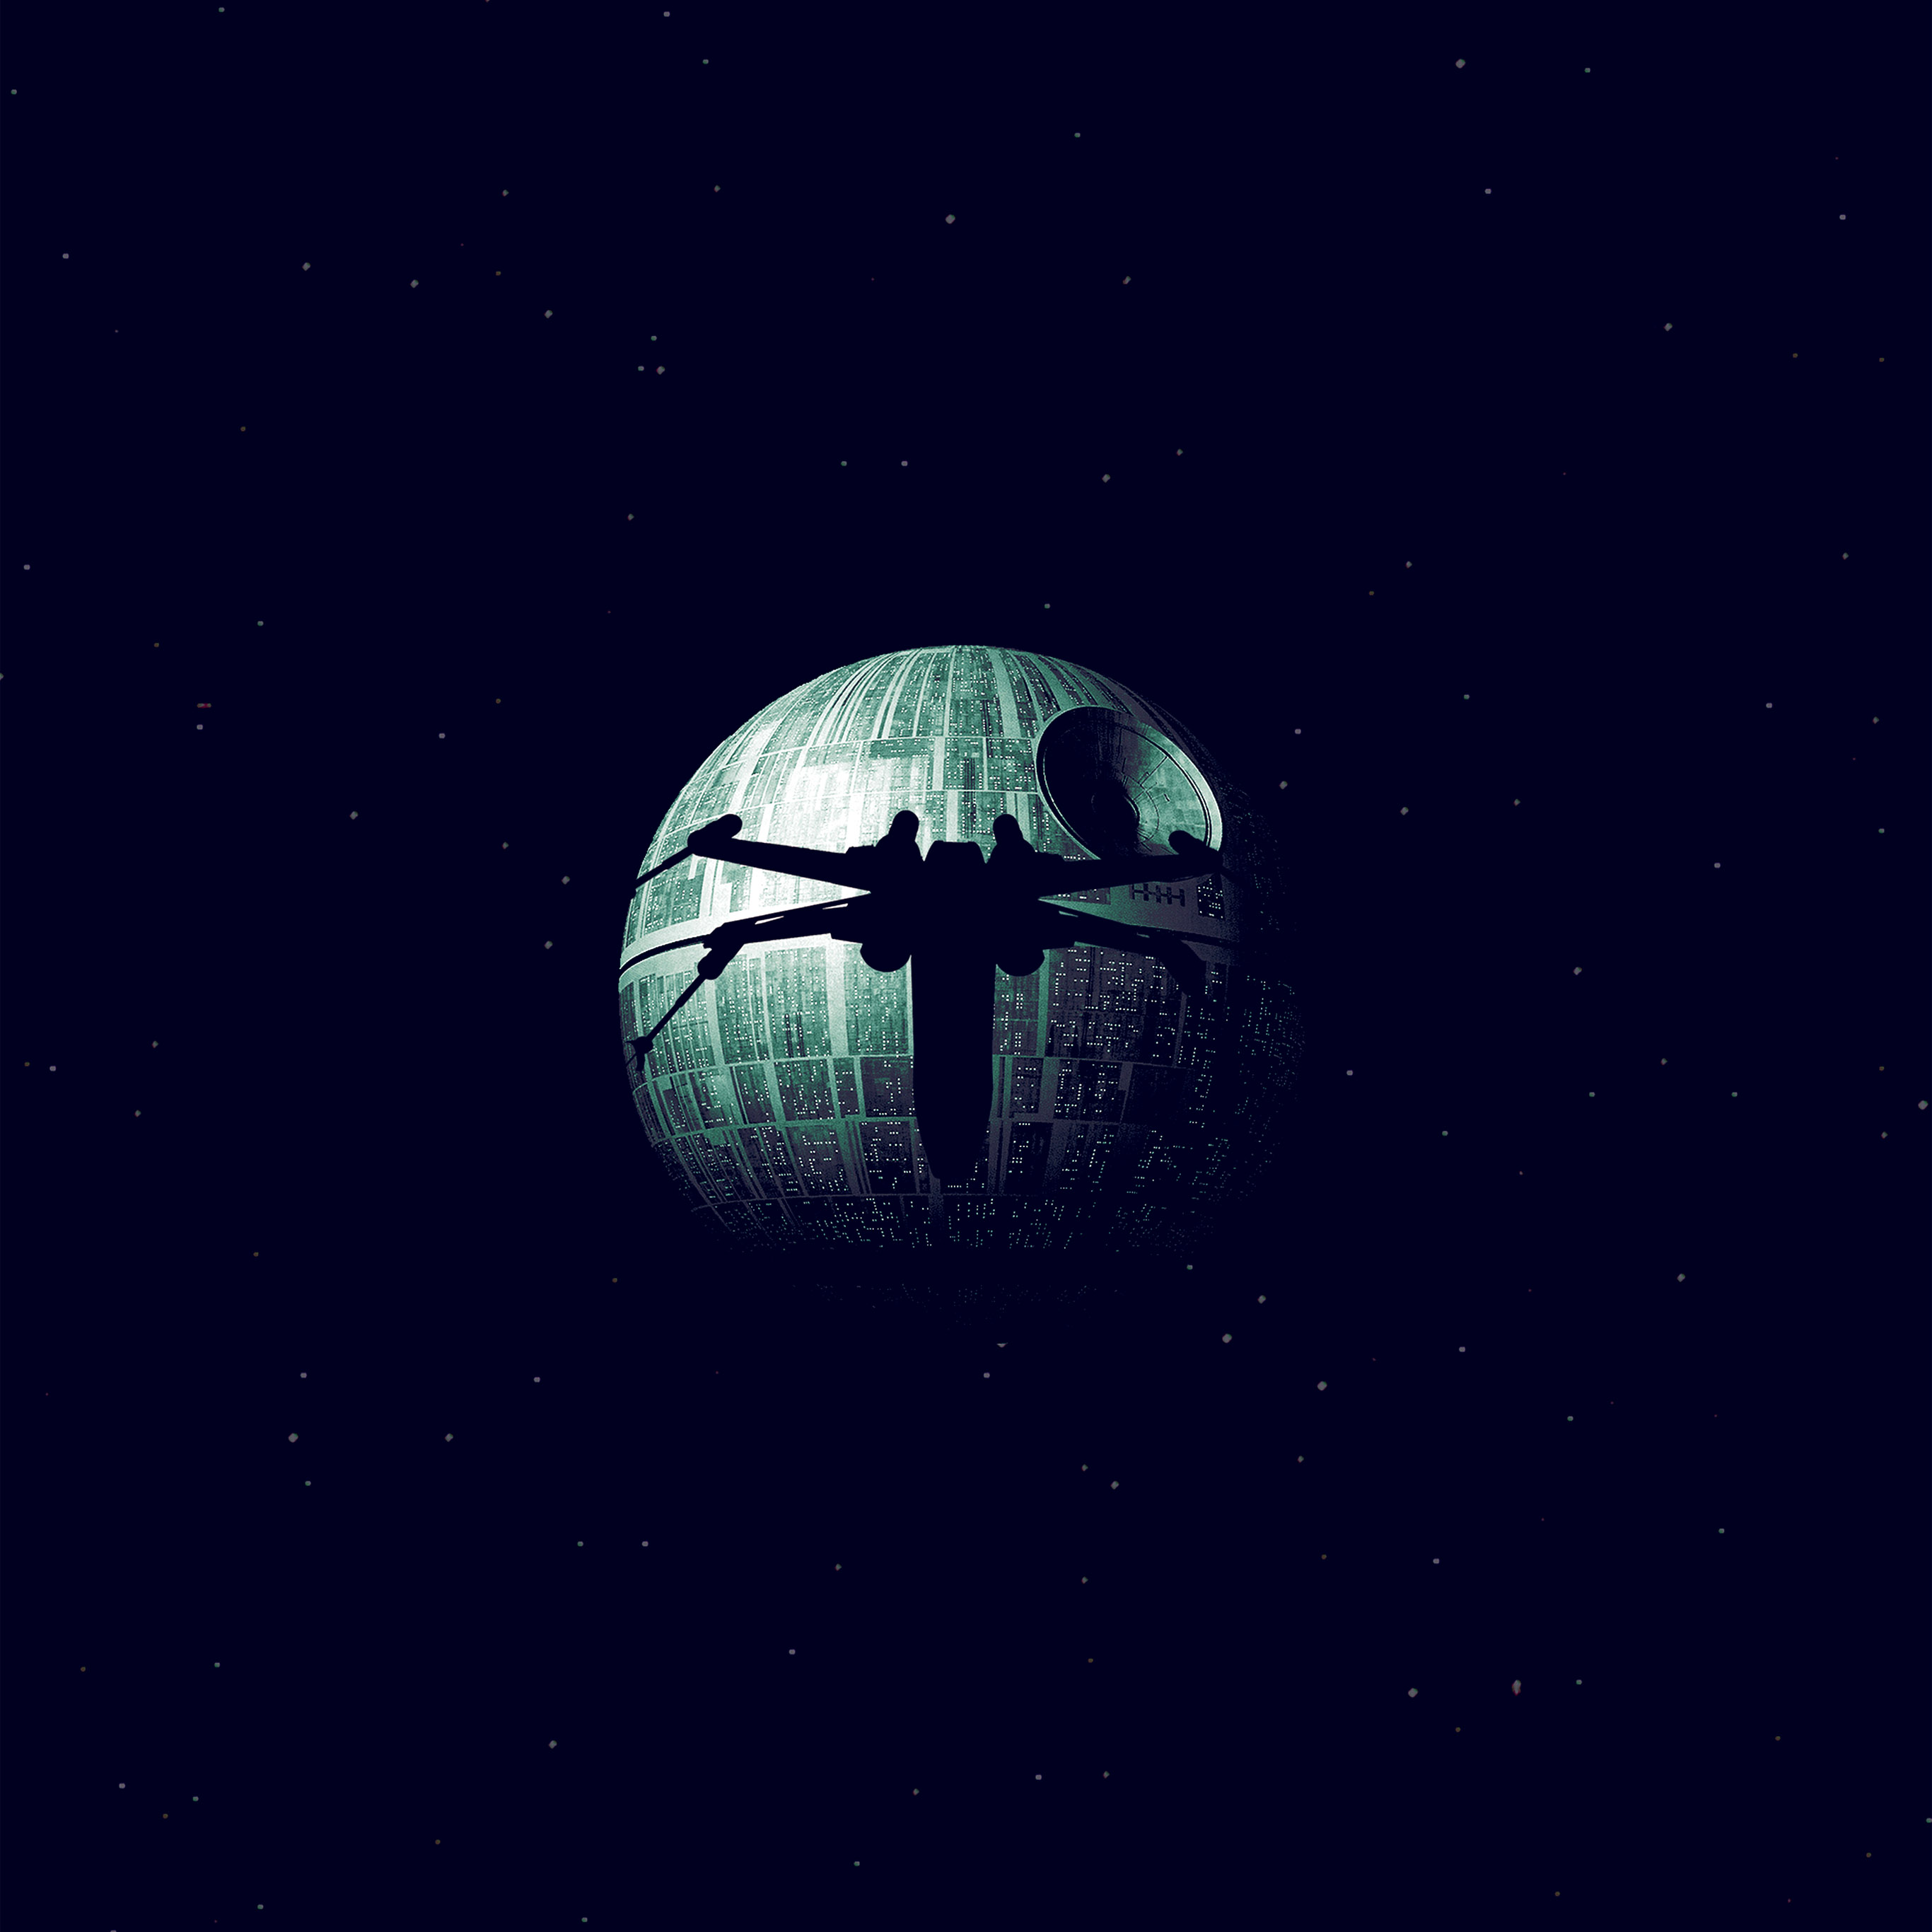 ax07-rogue-one-dark-space-starwars-poster-illustration-art-blue